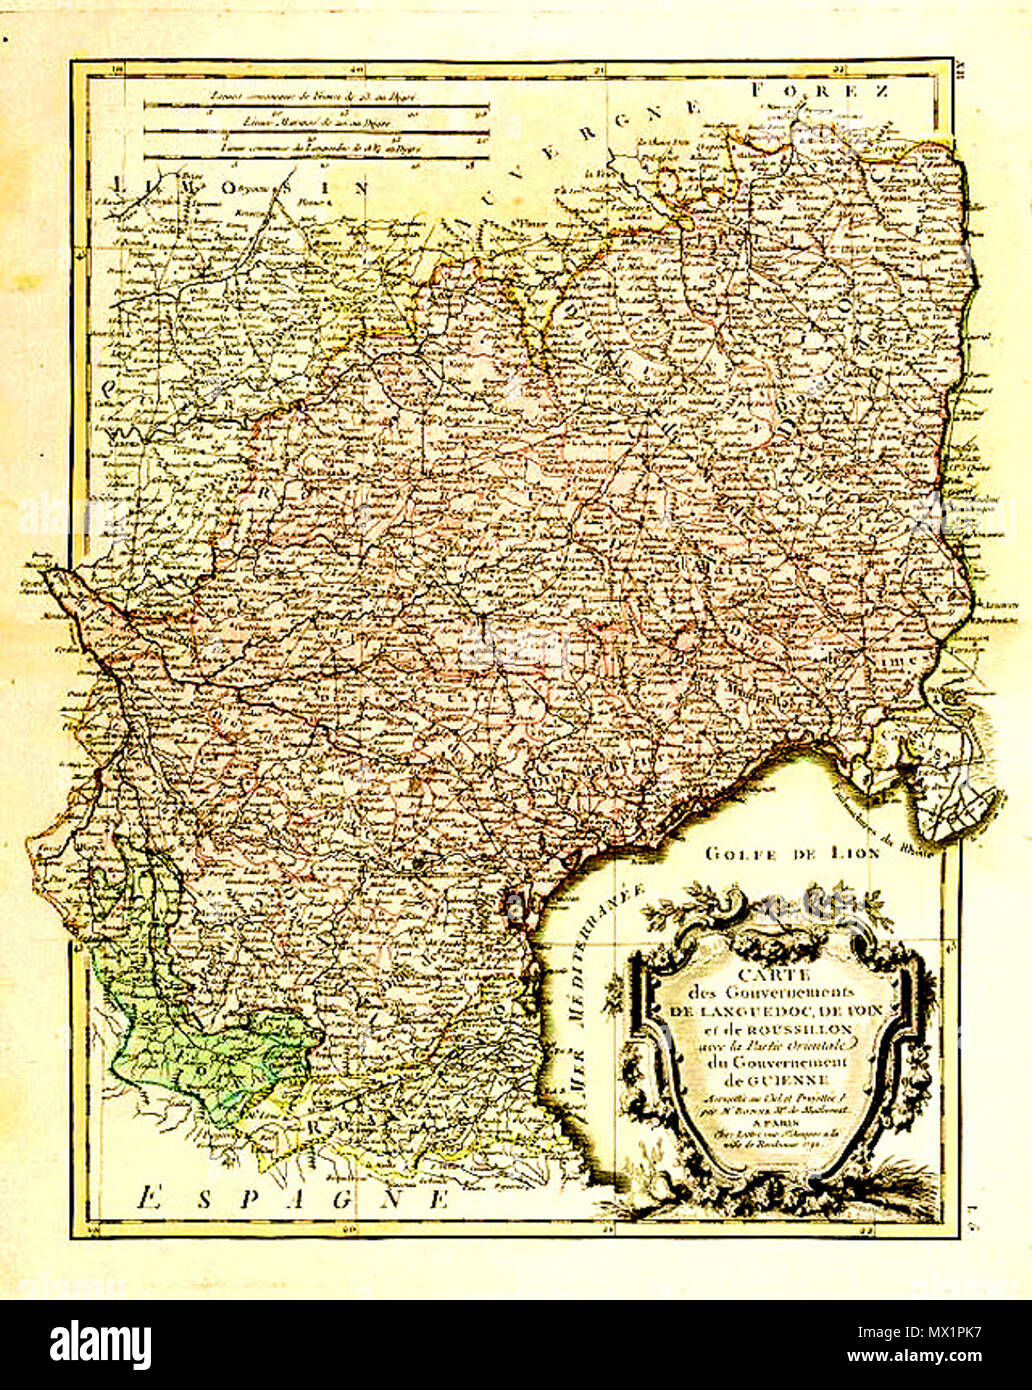 . Français : Carte des gouvernements du Languedoc-Roussillon par Rigobert Bonne (1727-1795 ), Paris, vers 1783 . 28 April 2012. Rigobert Bonne (1727-1795 ), Paris, vers 1783 116 Carte des Gouvernements de Languedoc.. Roussillon - Stock Image